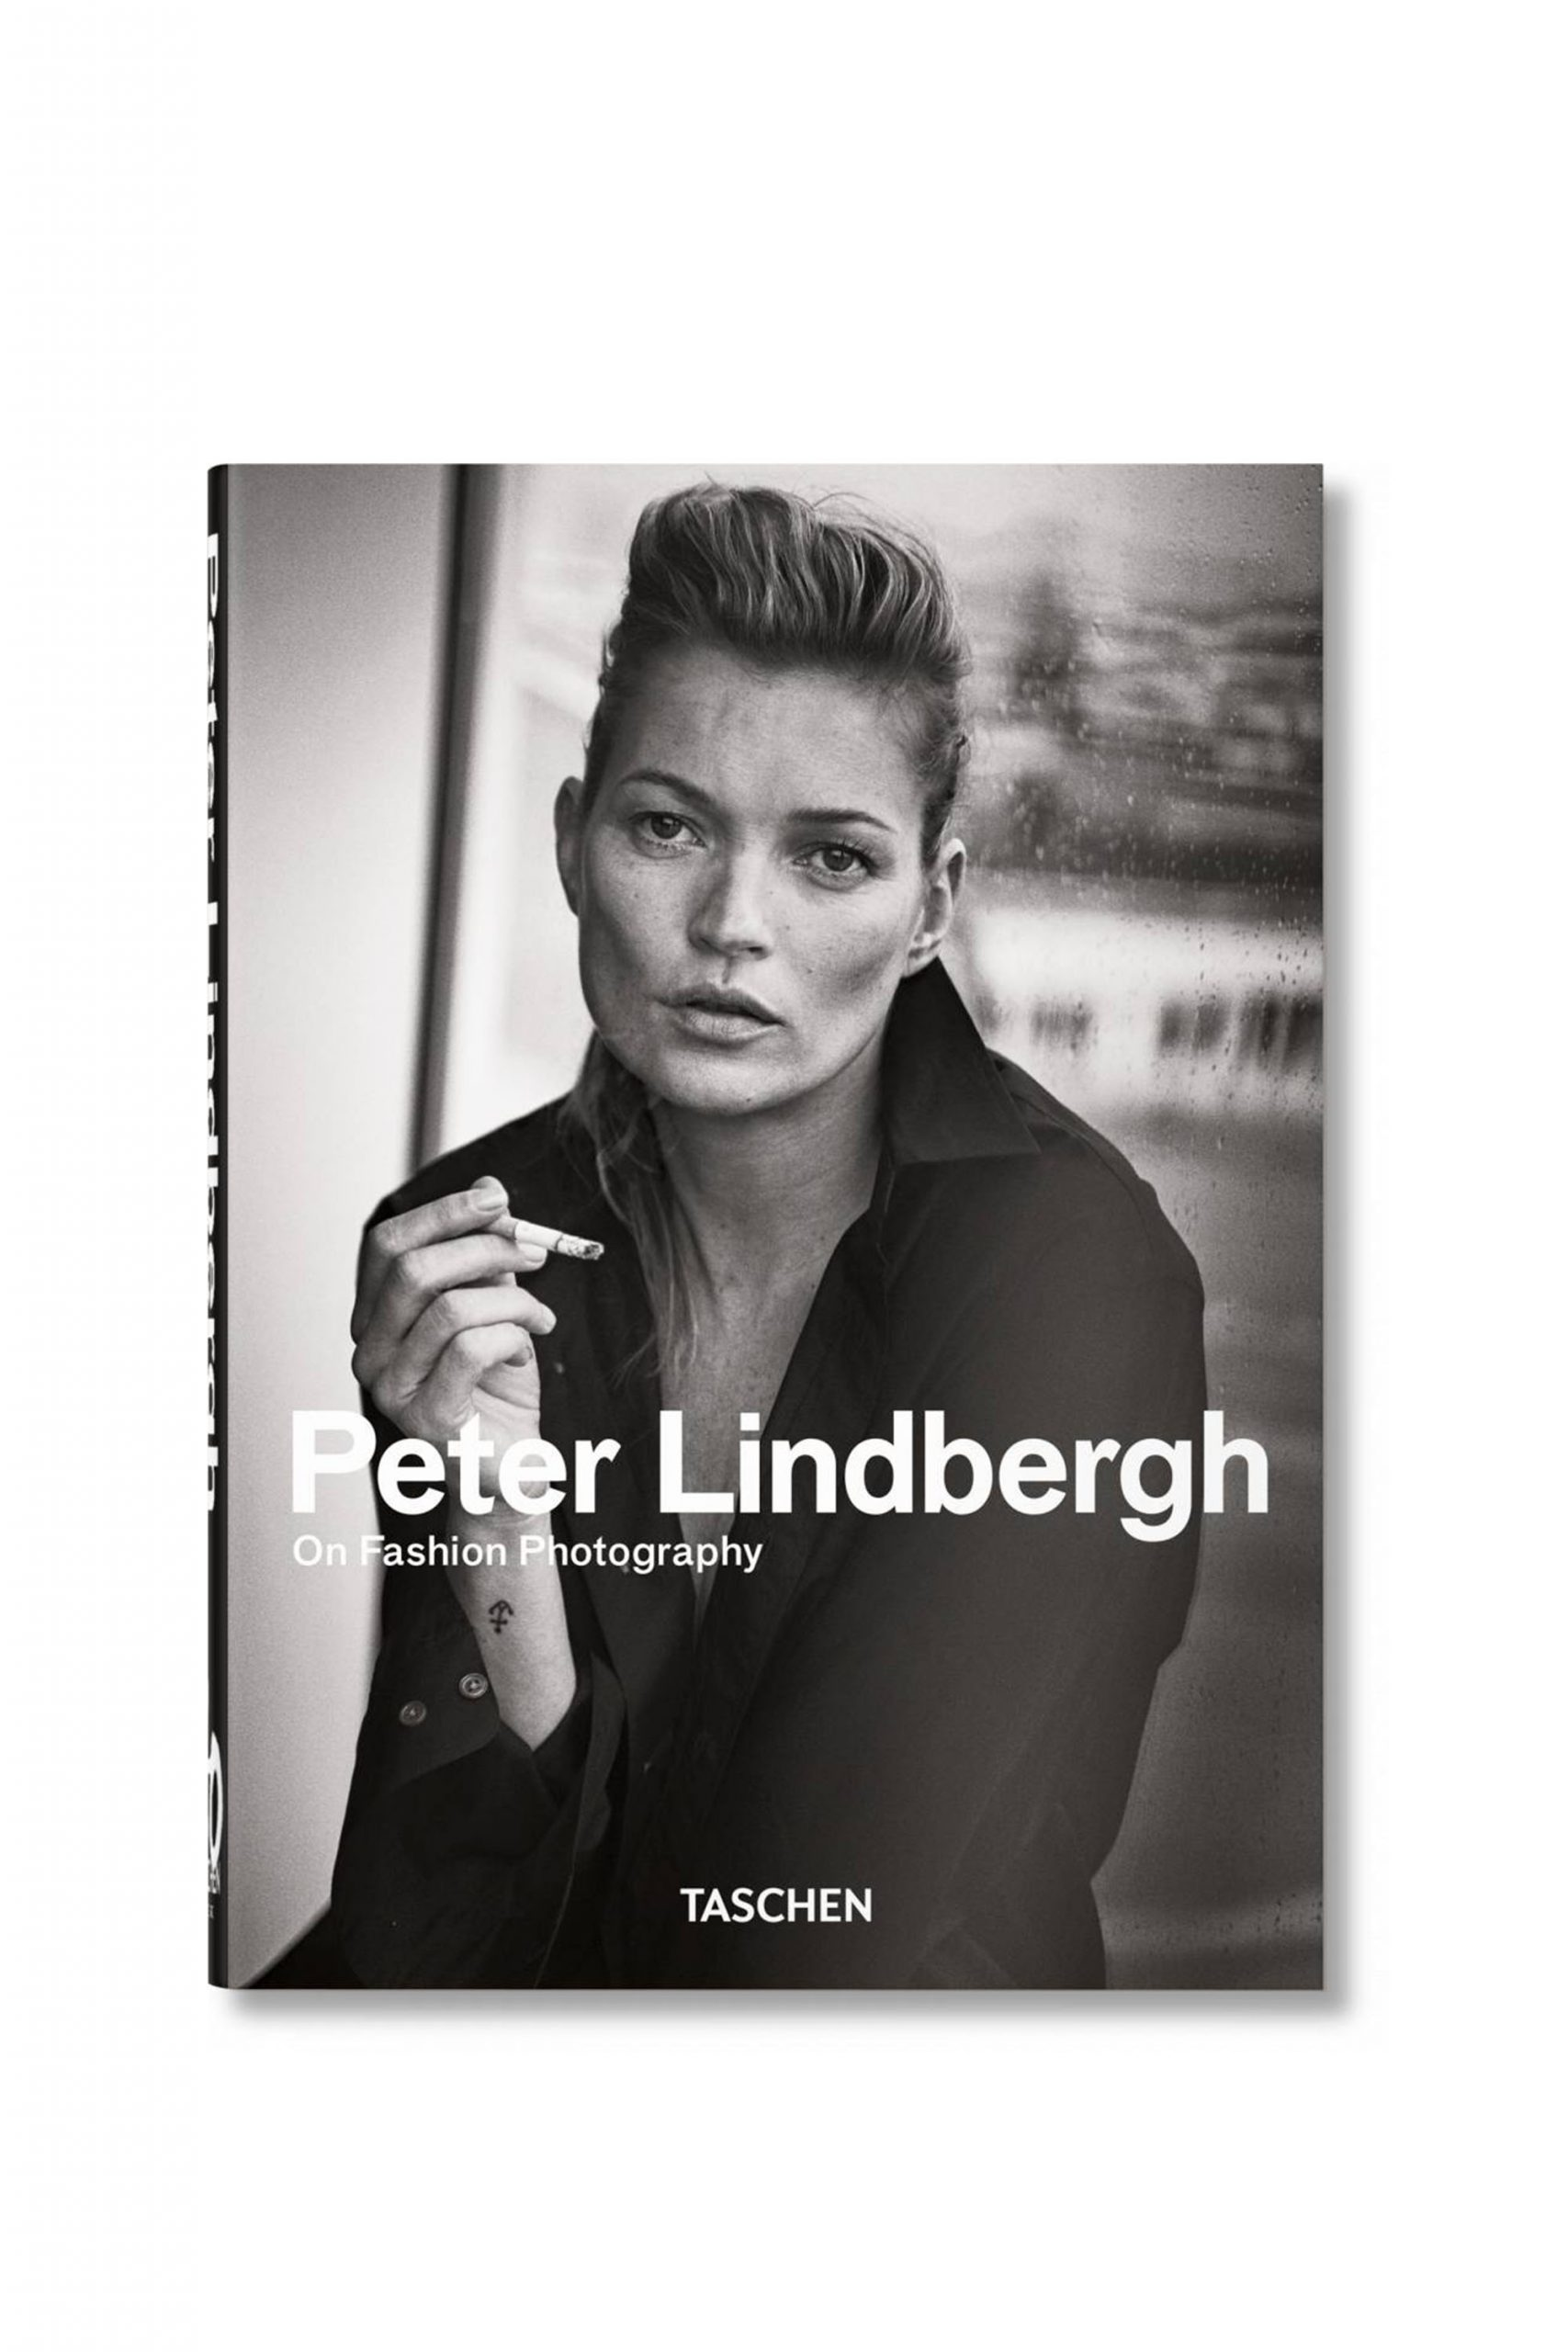 <p class='small-title'>TASCHEN</p>PETER LINDBERGH ON FASHION PHOTOGRAPHY